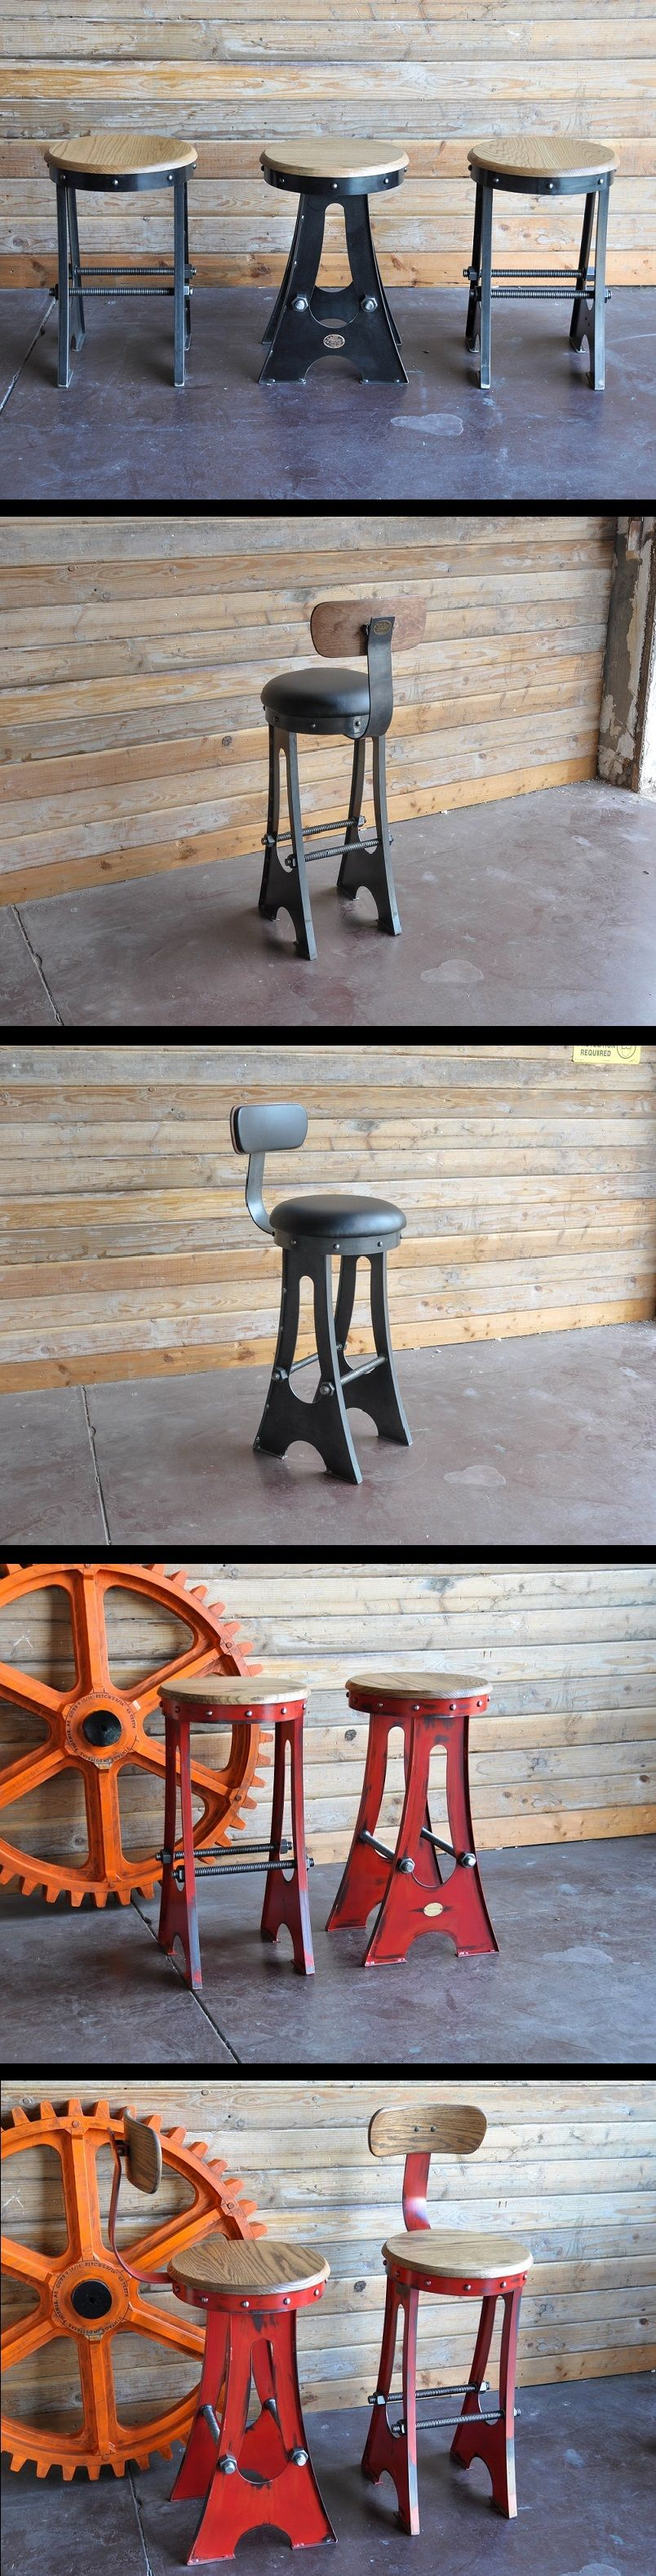 A Frame Stools By Vintage Industrial Furniture In Phoenix